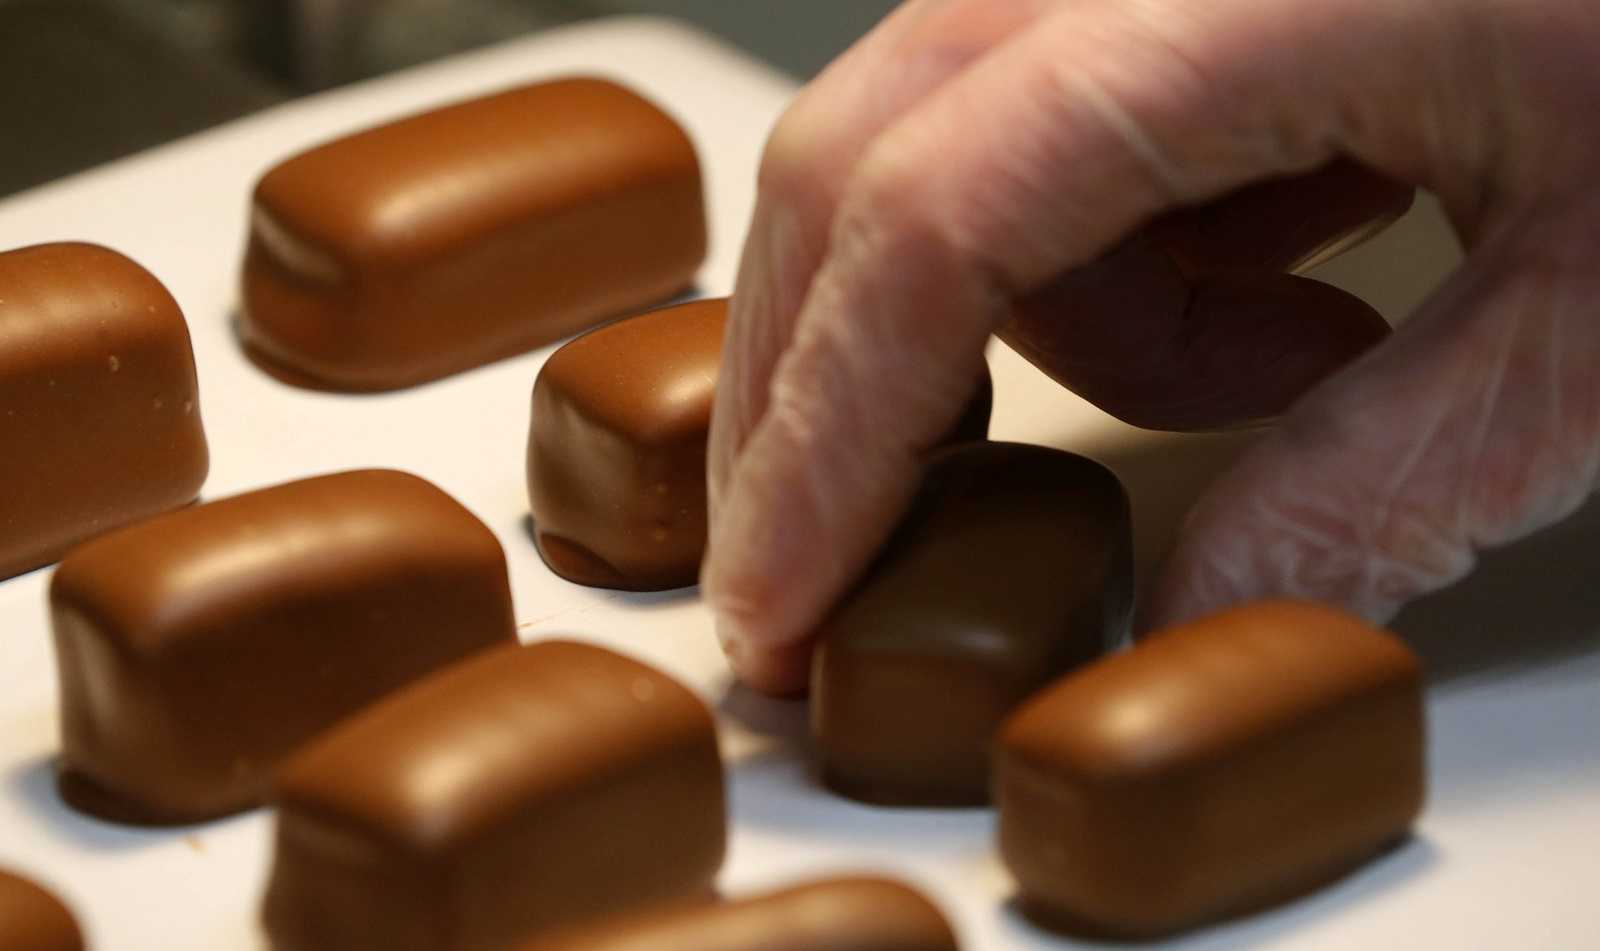 David Moteyunas sorts the finished sponge candy at Ko-Ed Candies in South Buffalo. (Mark Mulville/Buffalo News)